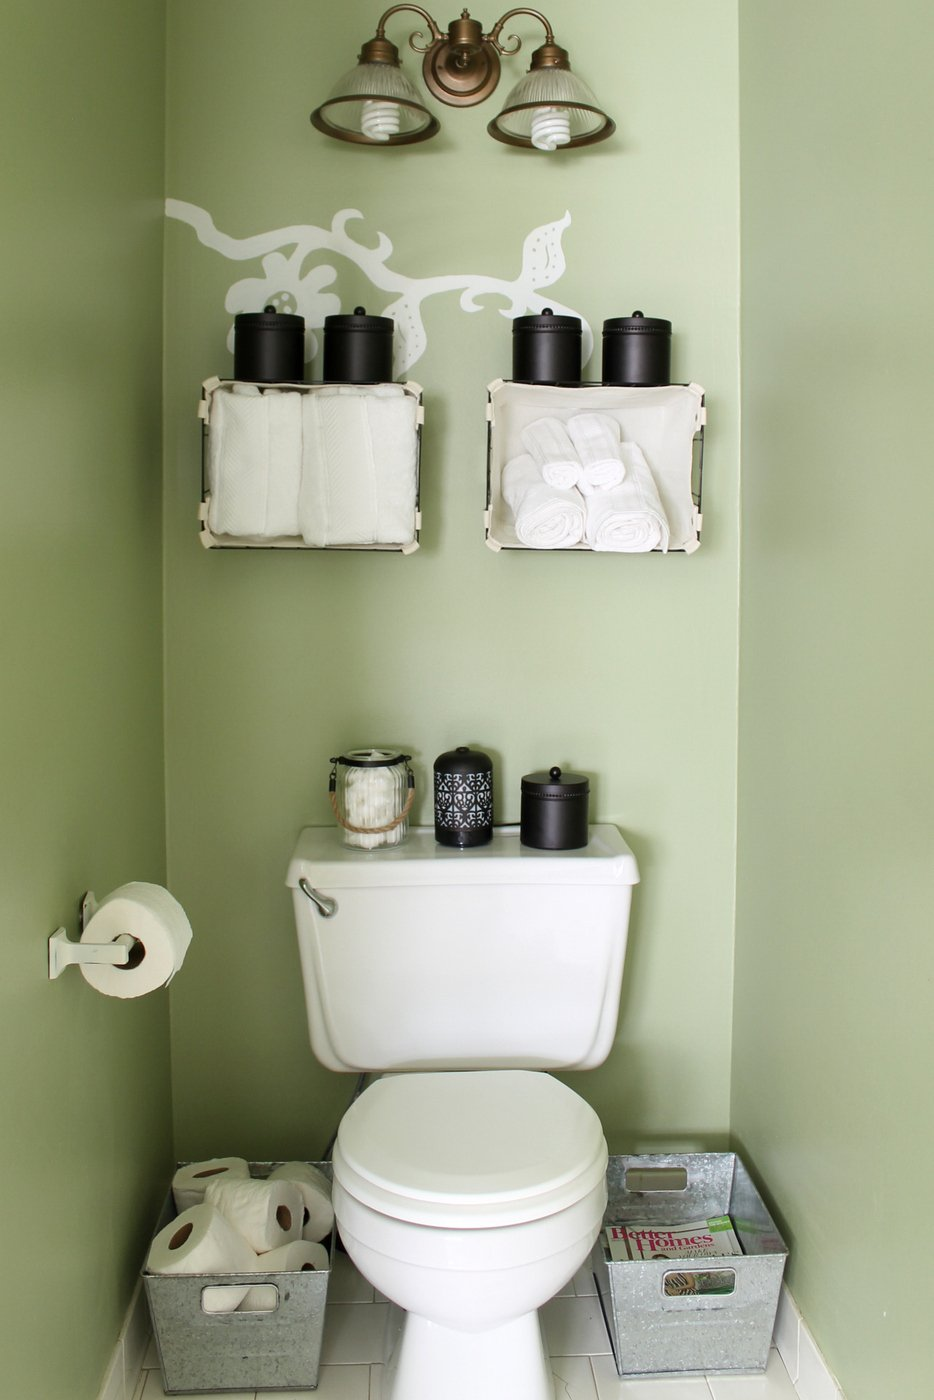 Small bathroom organization ideas the country chic cottage for Bathroom ideas small bathroom